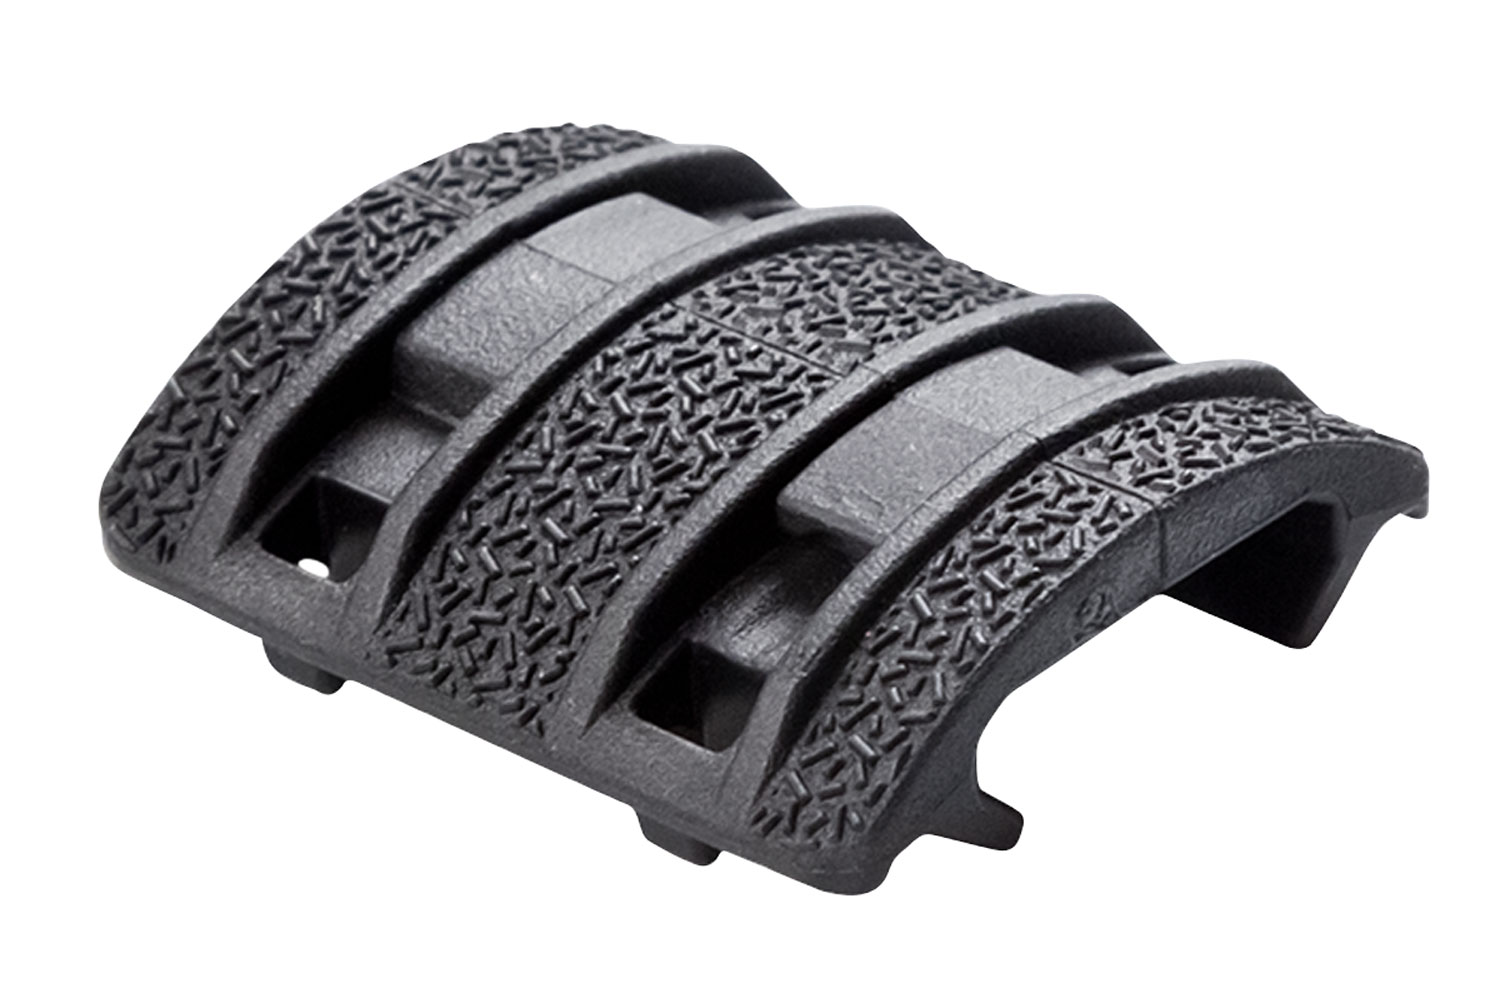 MAGPUL XTM ENHANCED RAIL PANEL BLK